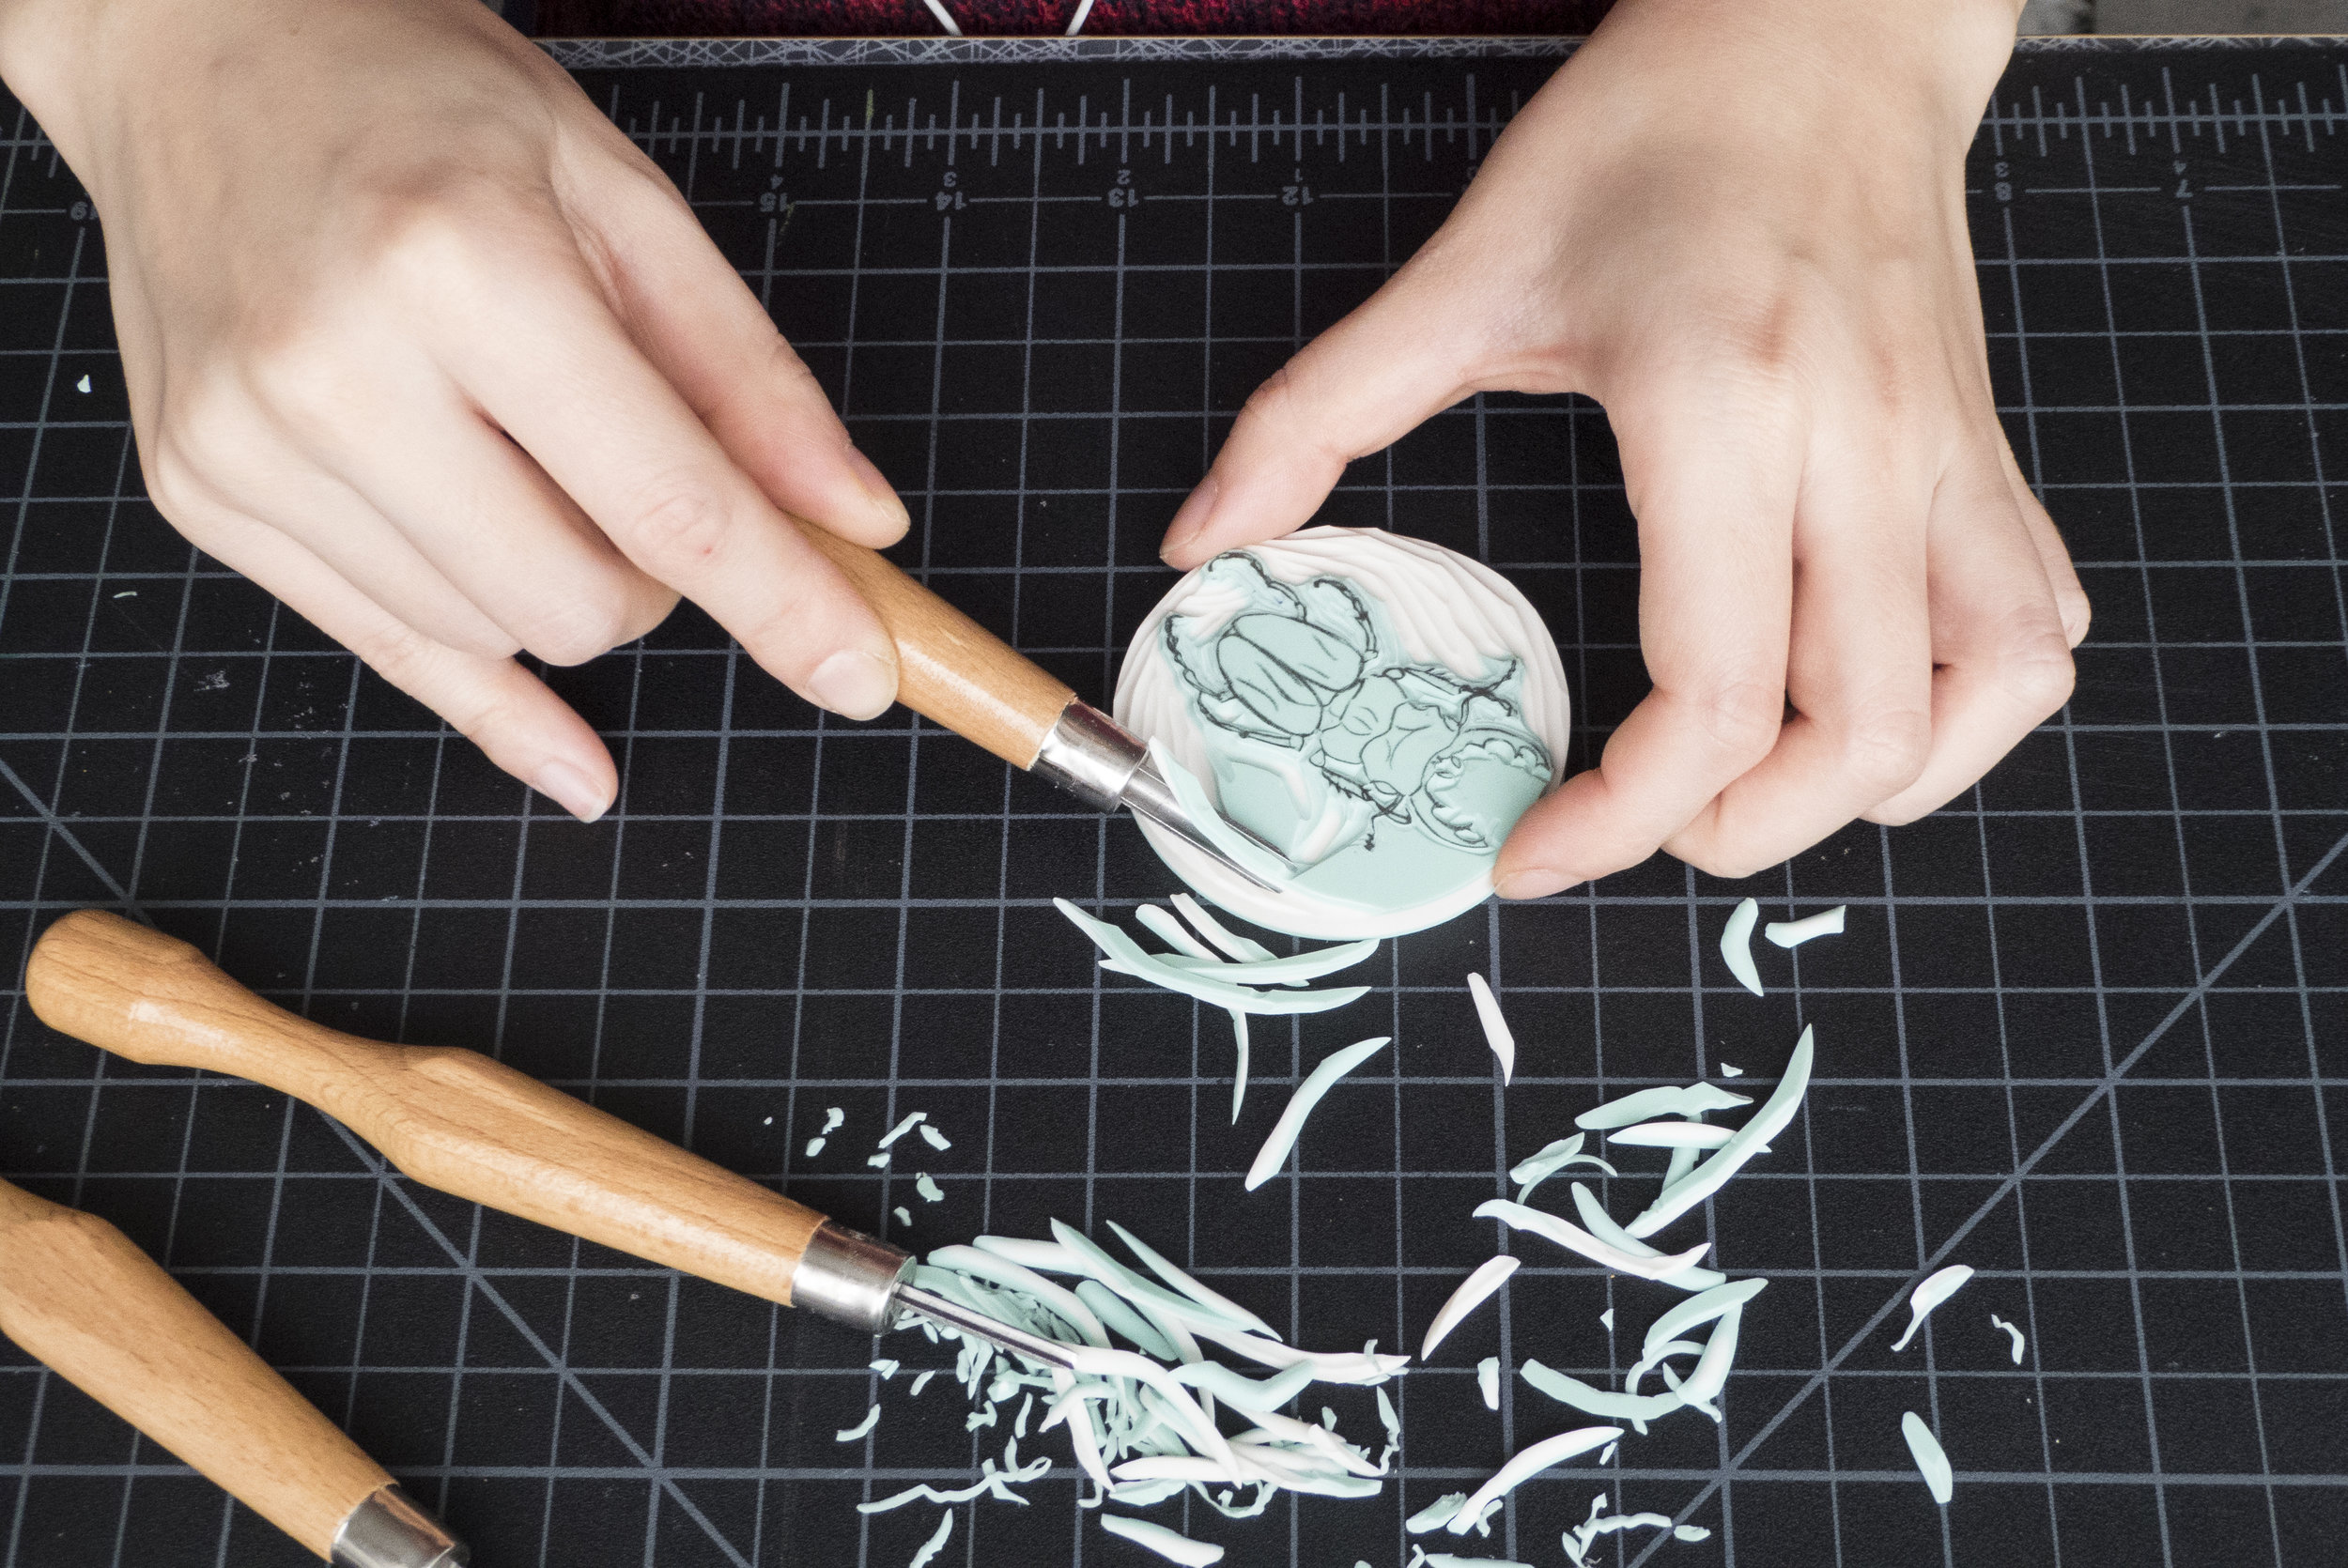 A kit that includes the tools, materials and instructions to start making one's own rubber stamps.